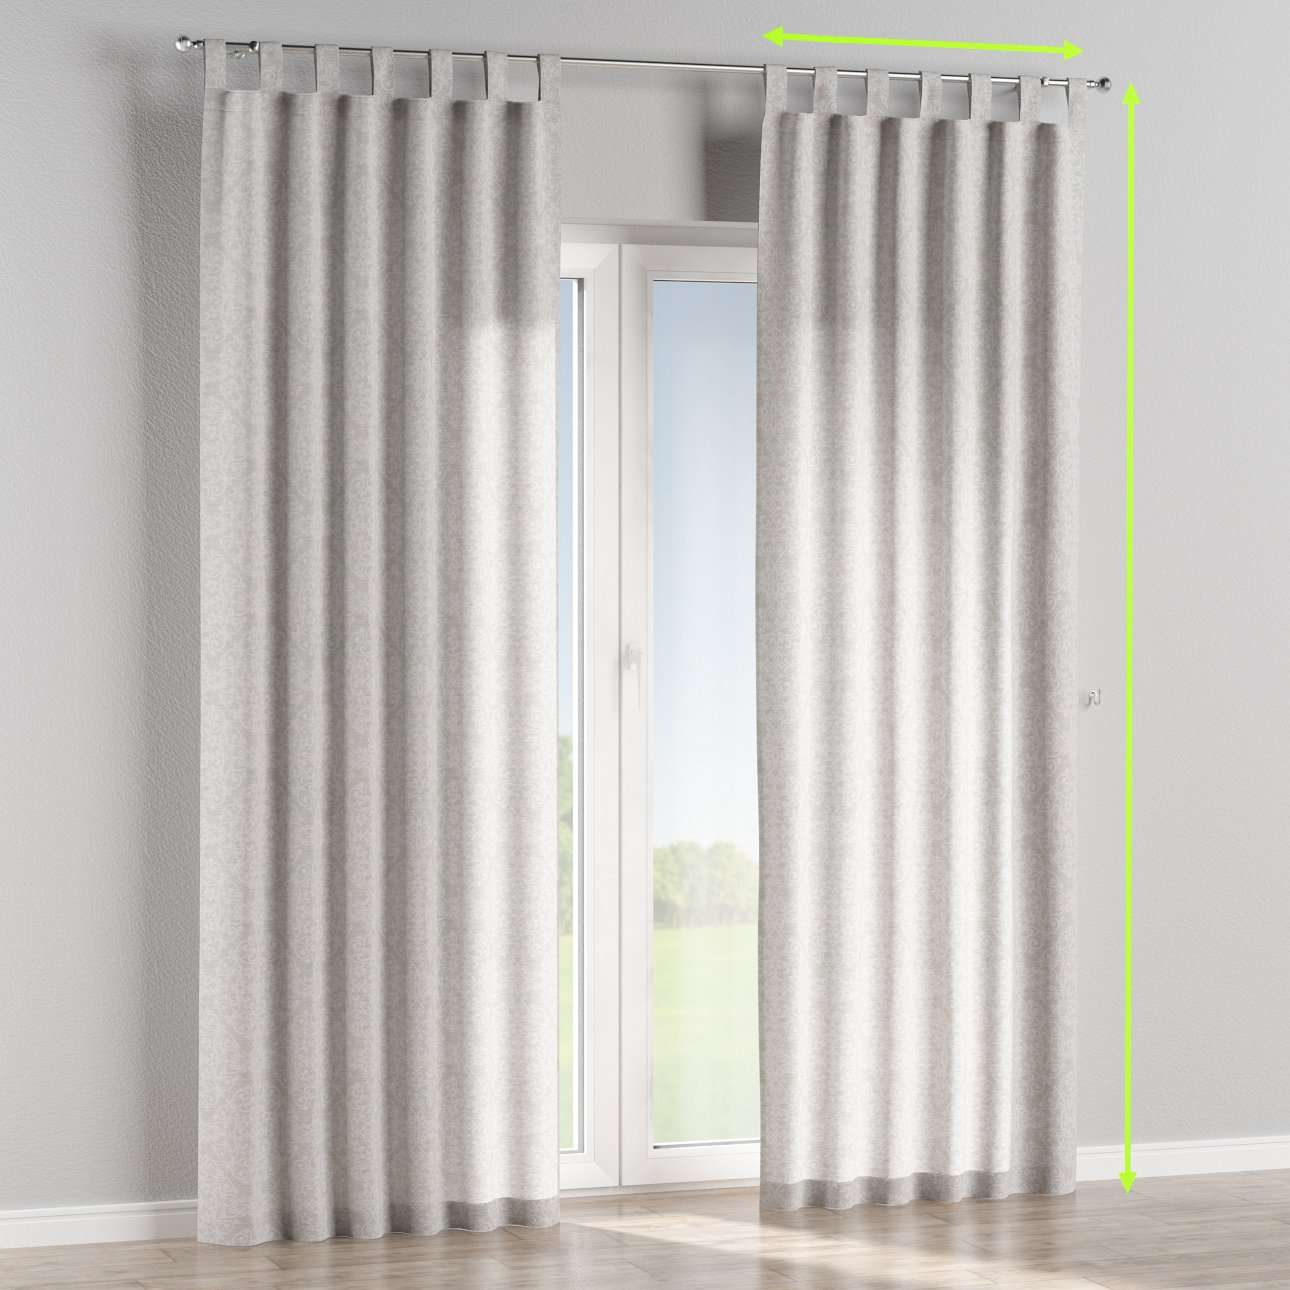 Tiebacks Pair Brand New Home, Furniture & Diy Curtains & Blinds Bright Oxford Check Lined Curtains